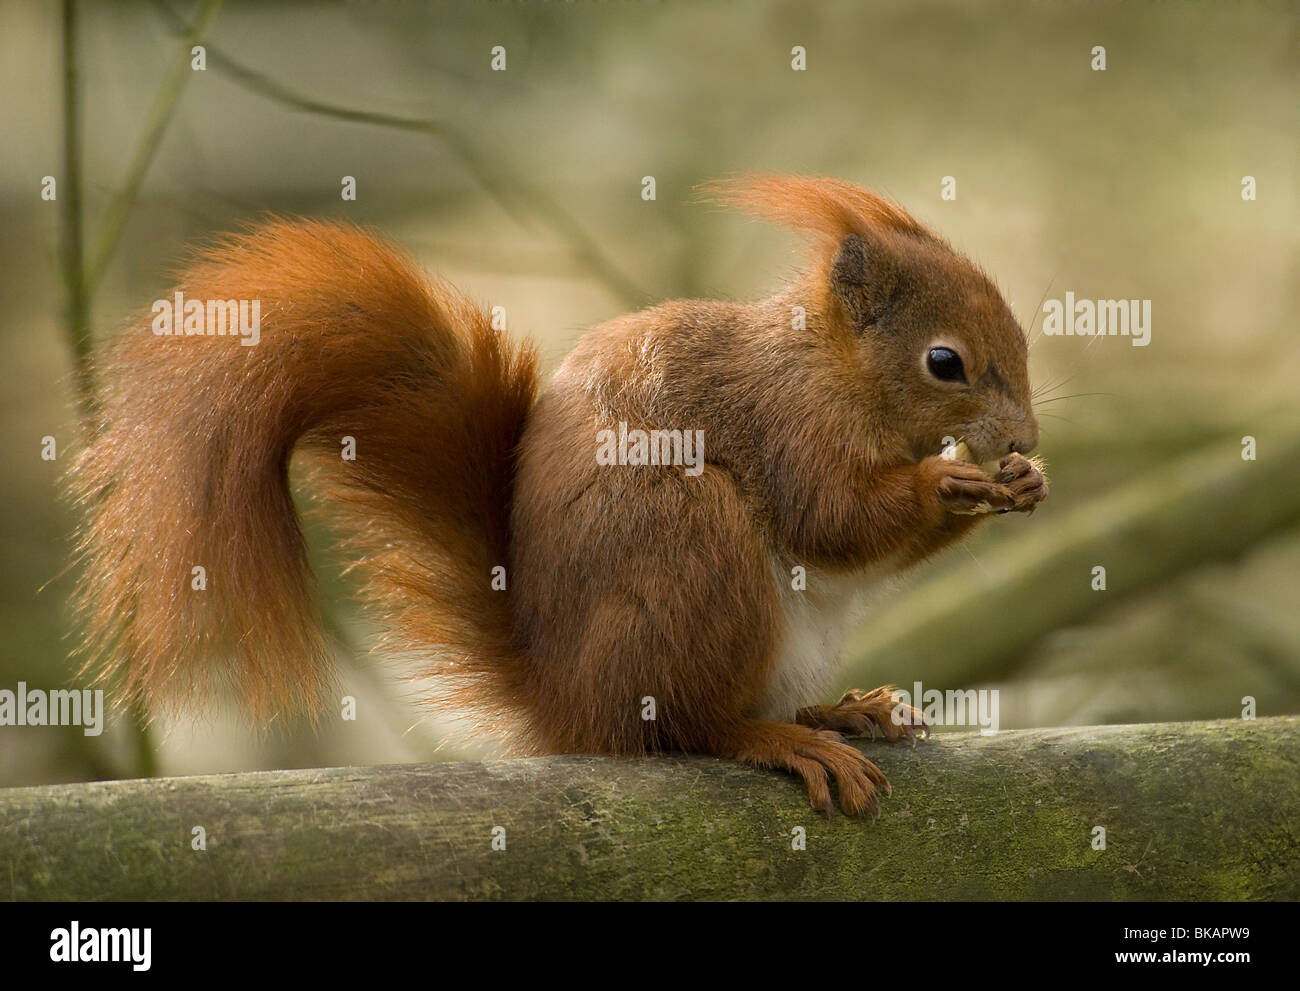 Red squirrel feeding - Stock Image